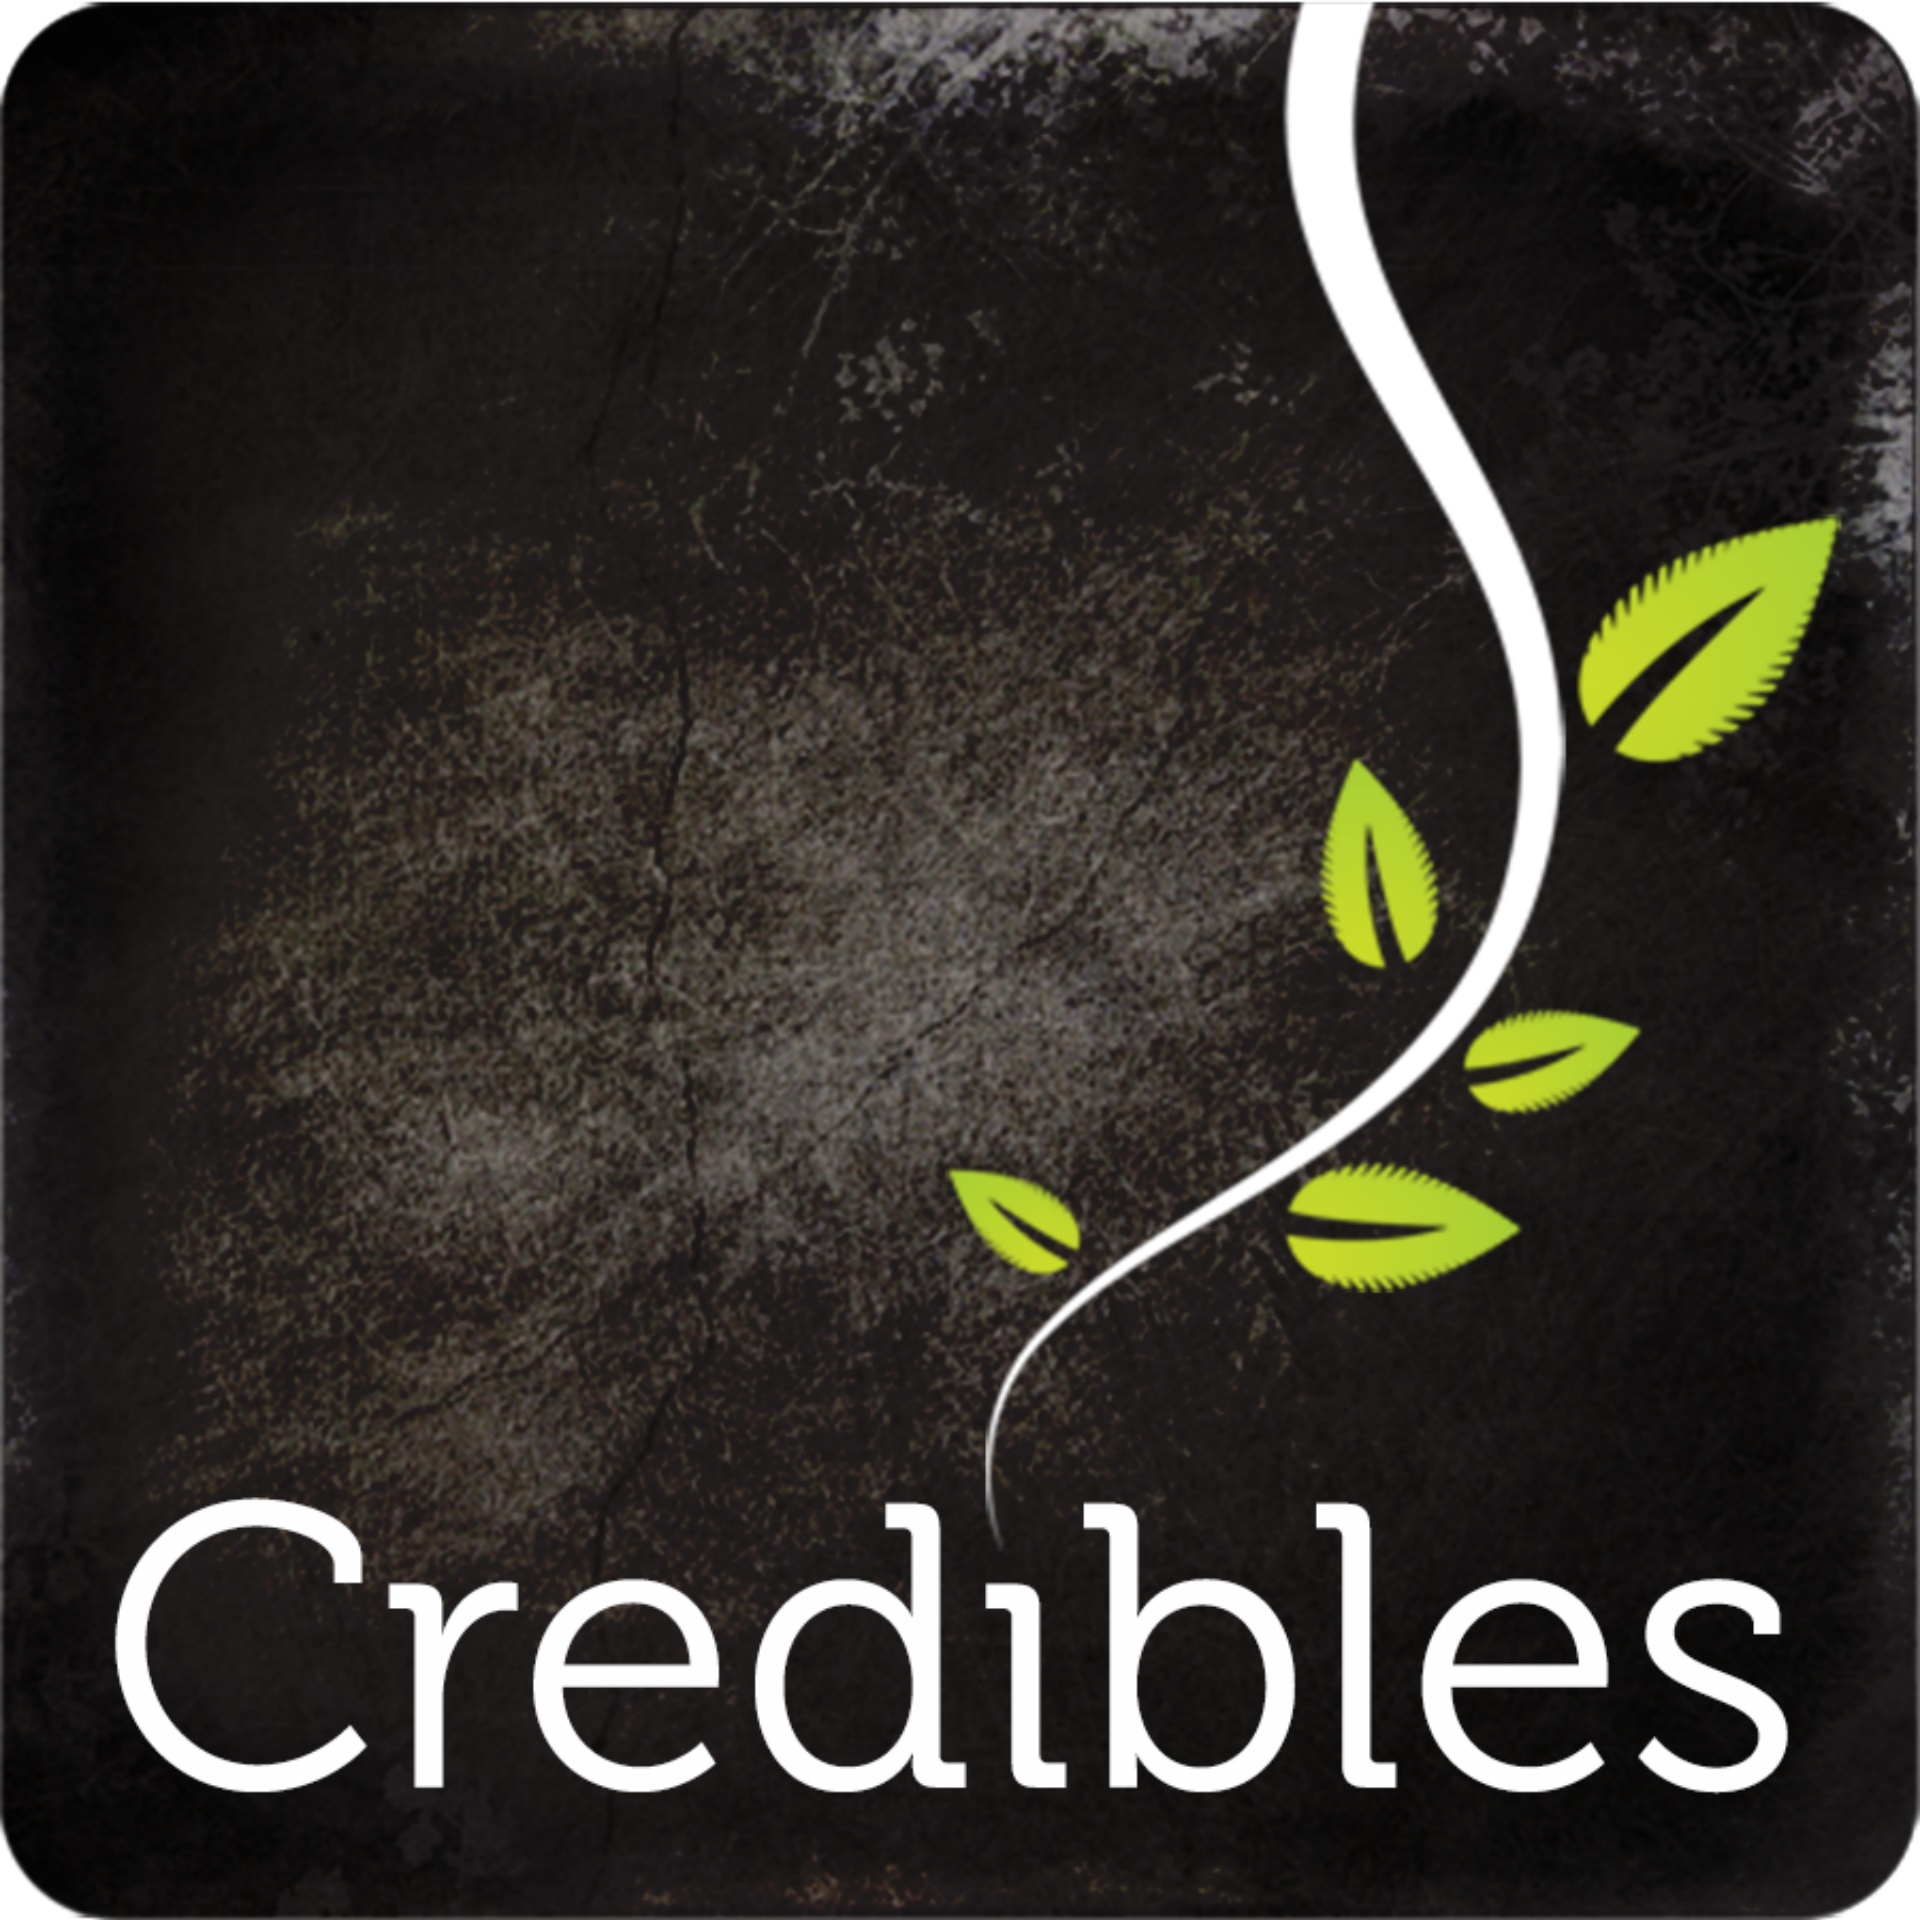 Credibles helps customers fund their favorite food businesses.